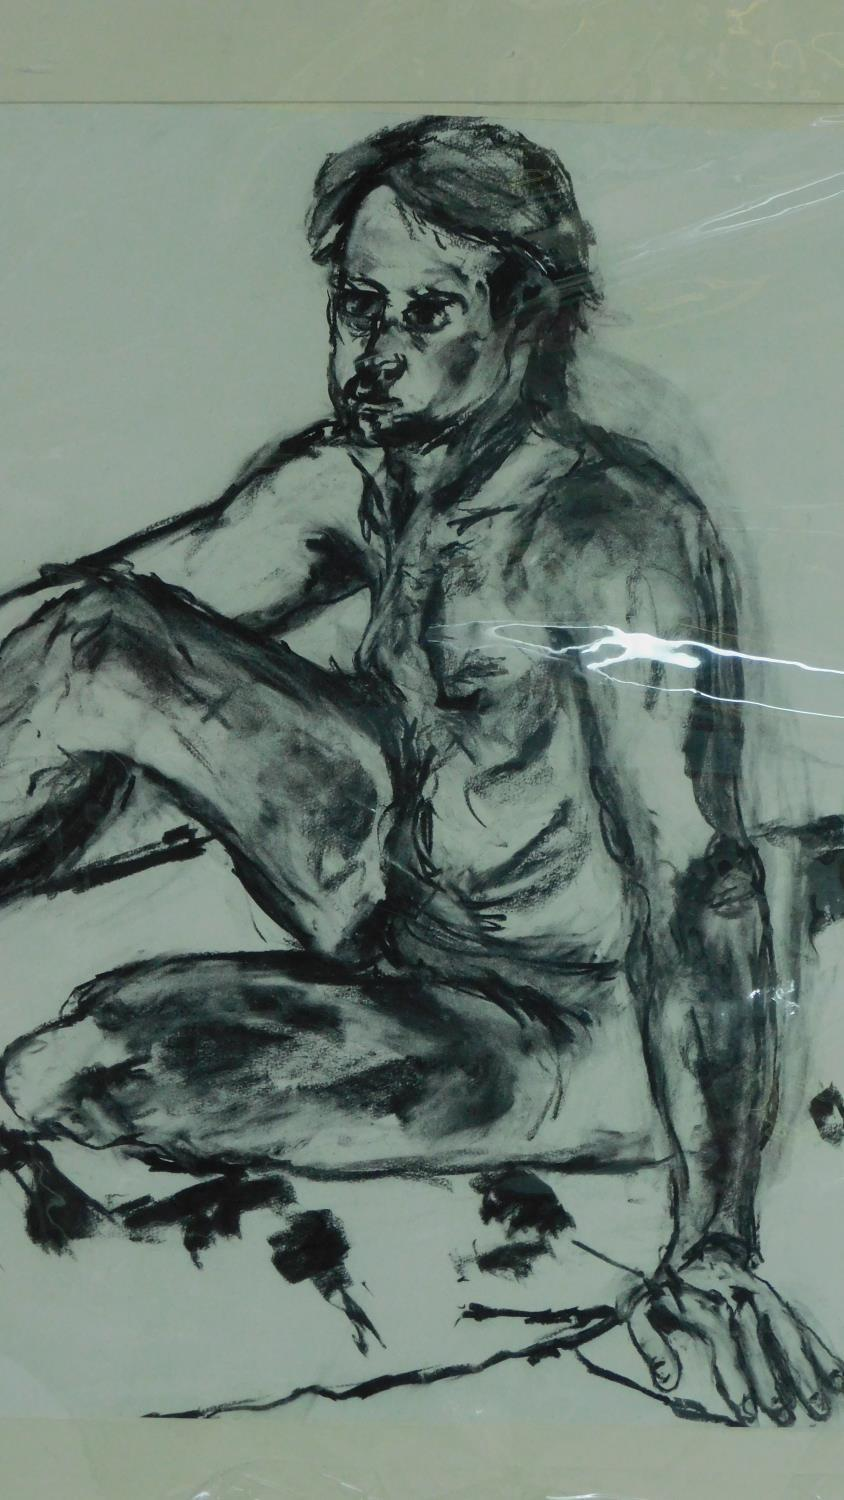 Three unframed mounted charcoal sketches, nude studies, monogrammed G H - 90x70cm (largest) - Image 3 of 5